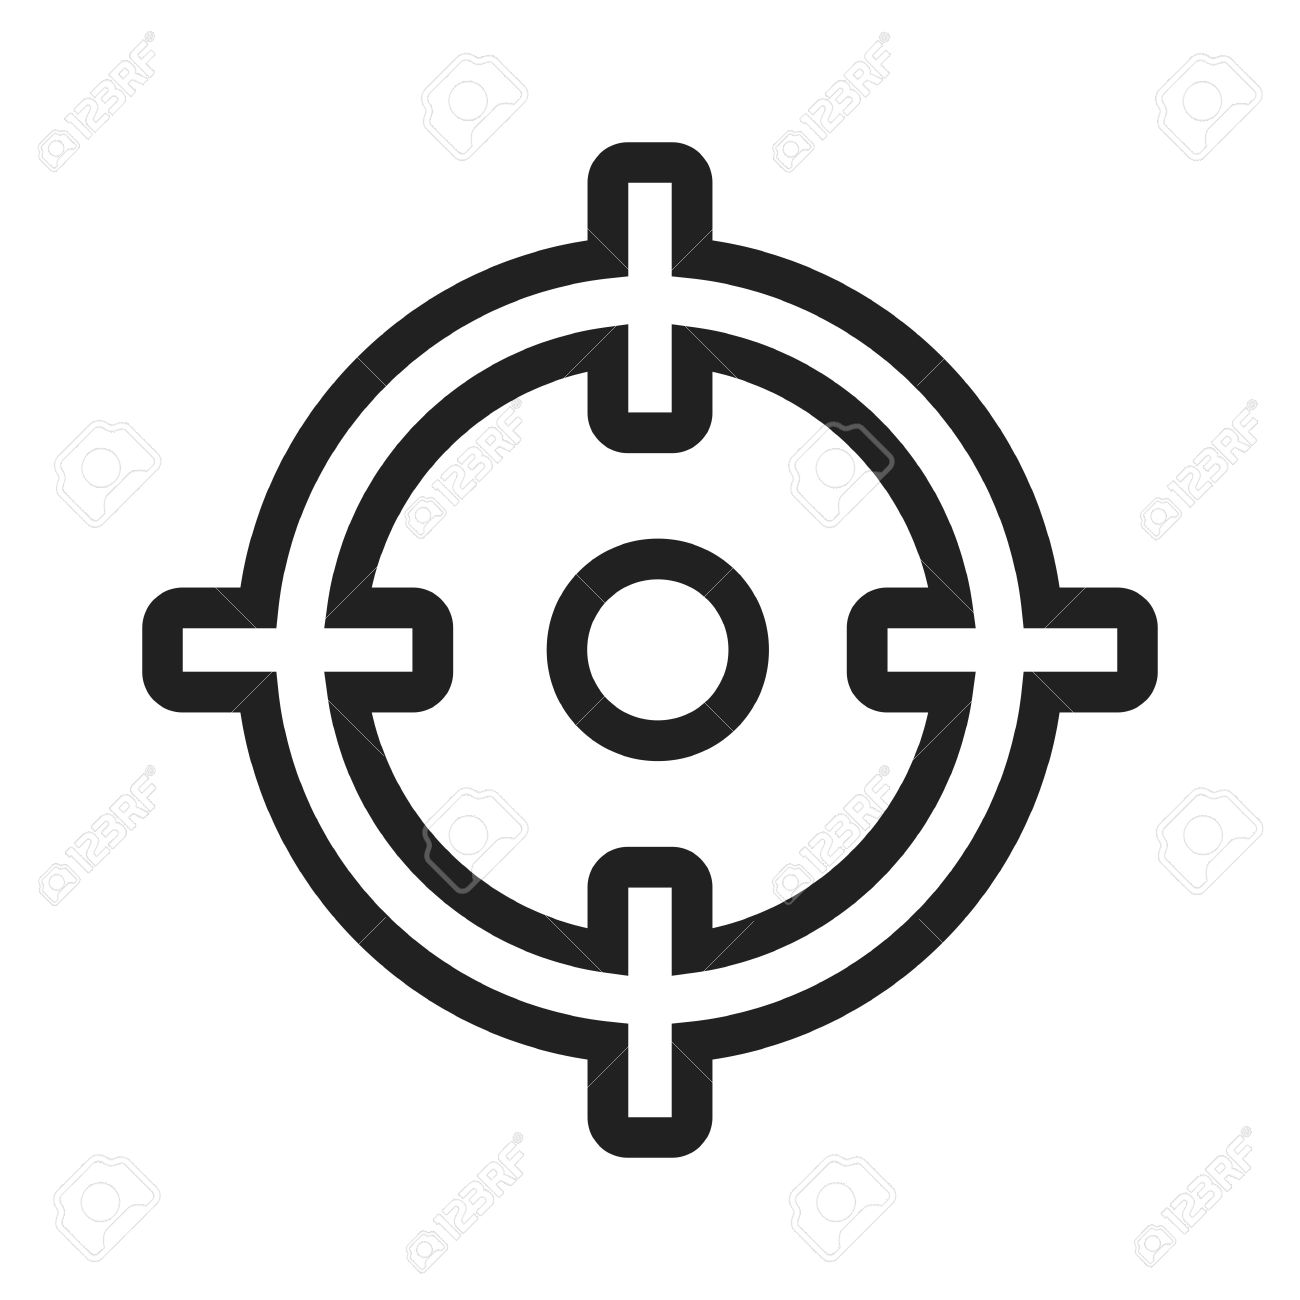 target market aim icon vector image can also be used for seo royalty free cliparts vectors and stock illustration image 41967065 target market aim icon vector image can also be used for seo